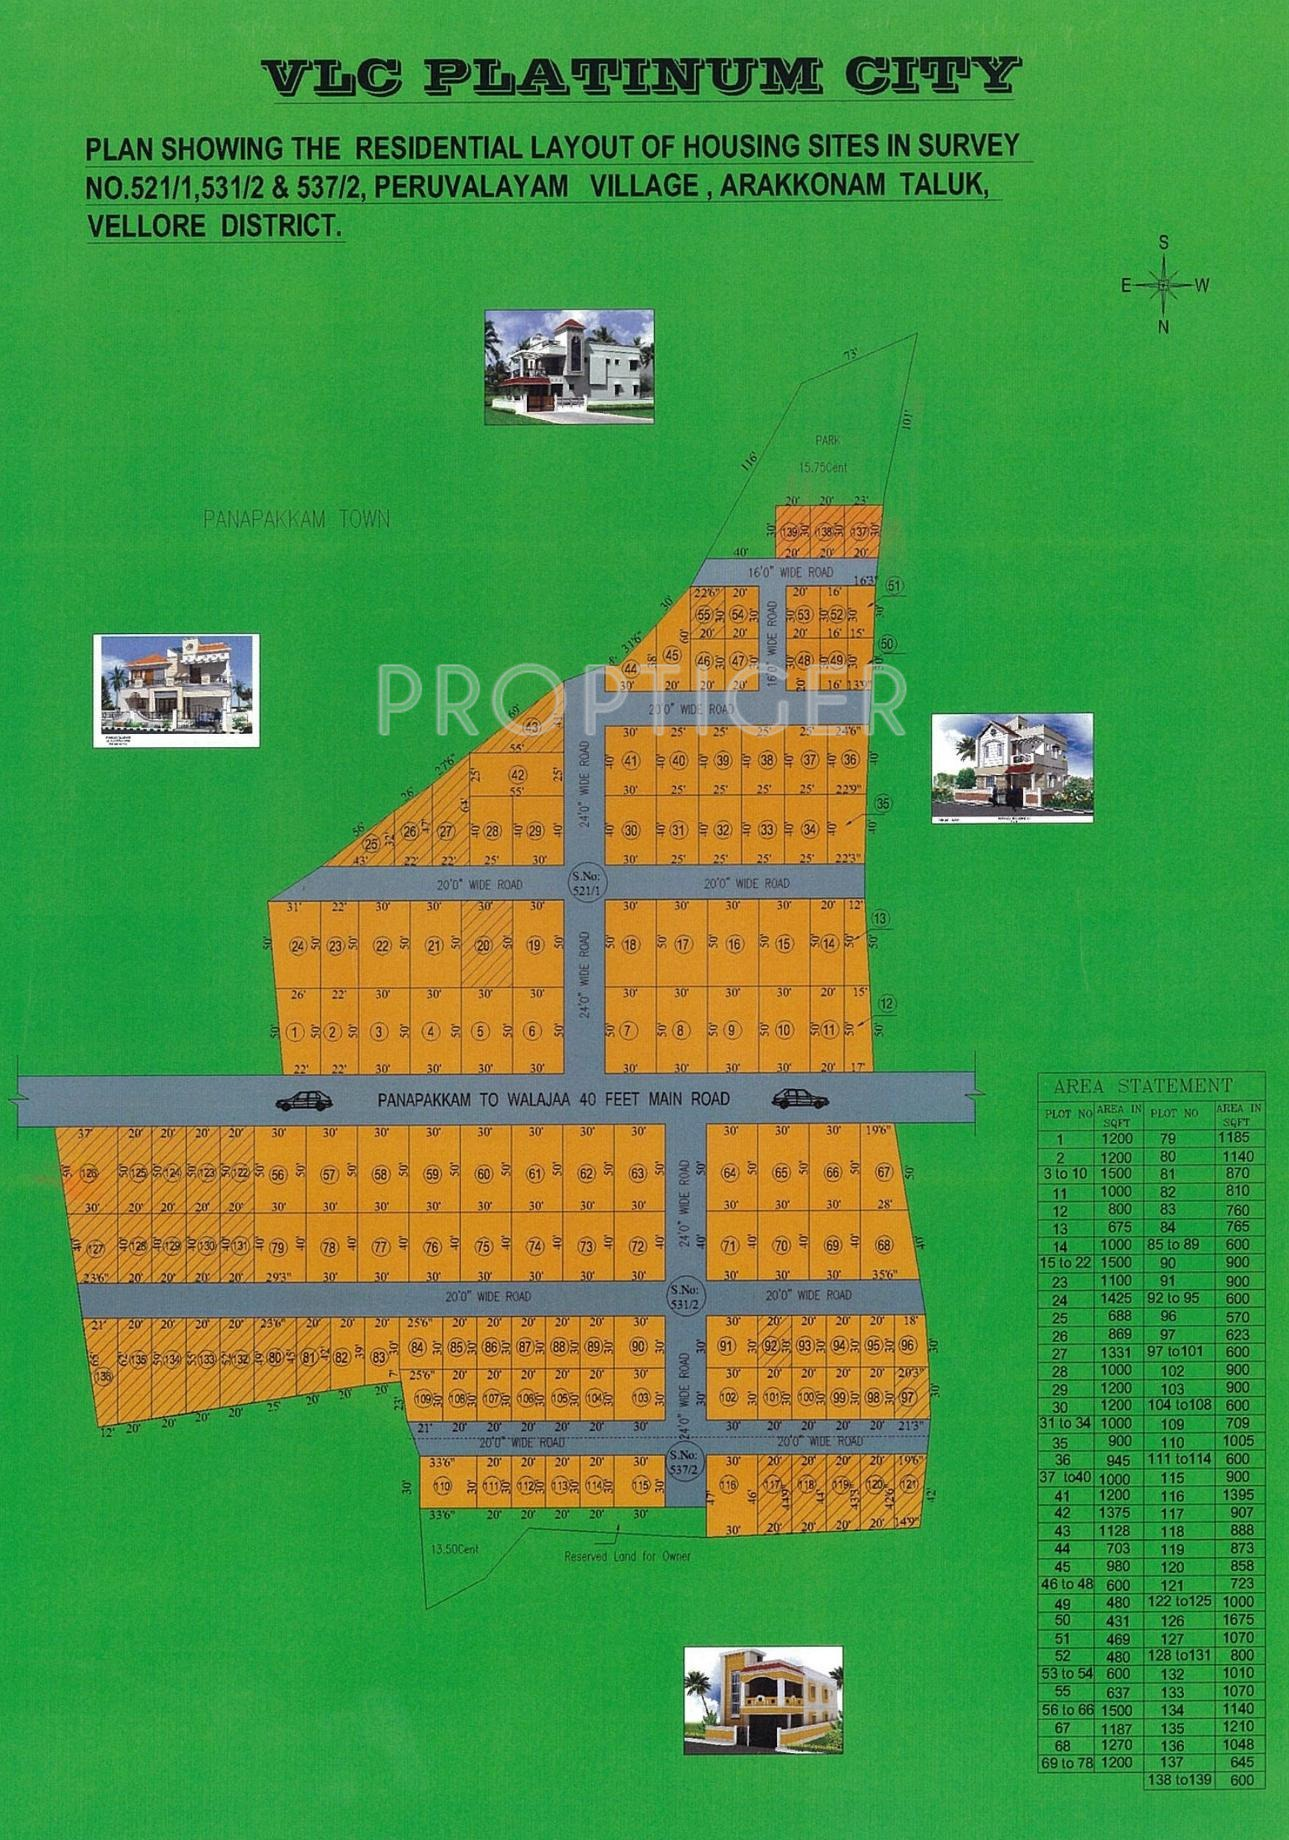 2000 sq ft plot for sale in vlc enterprises platinum city for 2000 sq ft gym layout